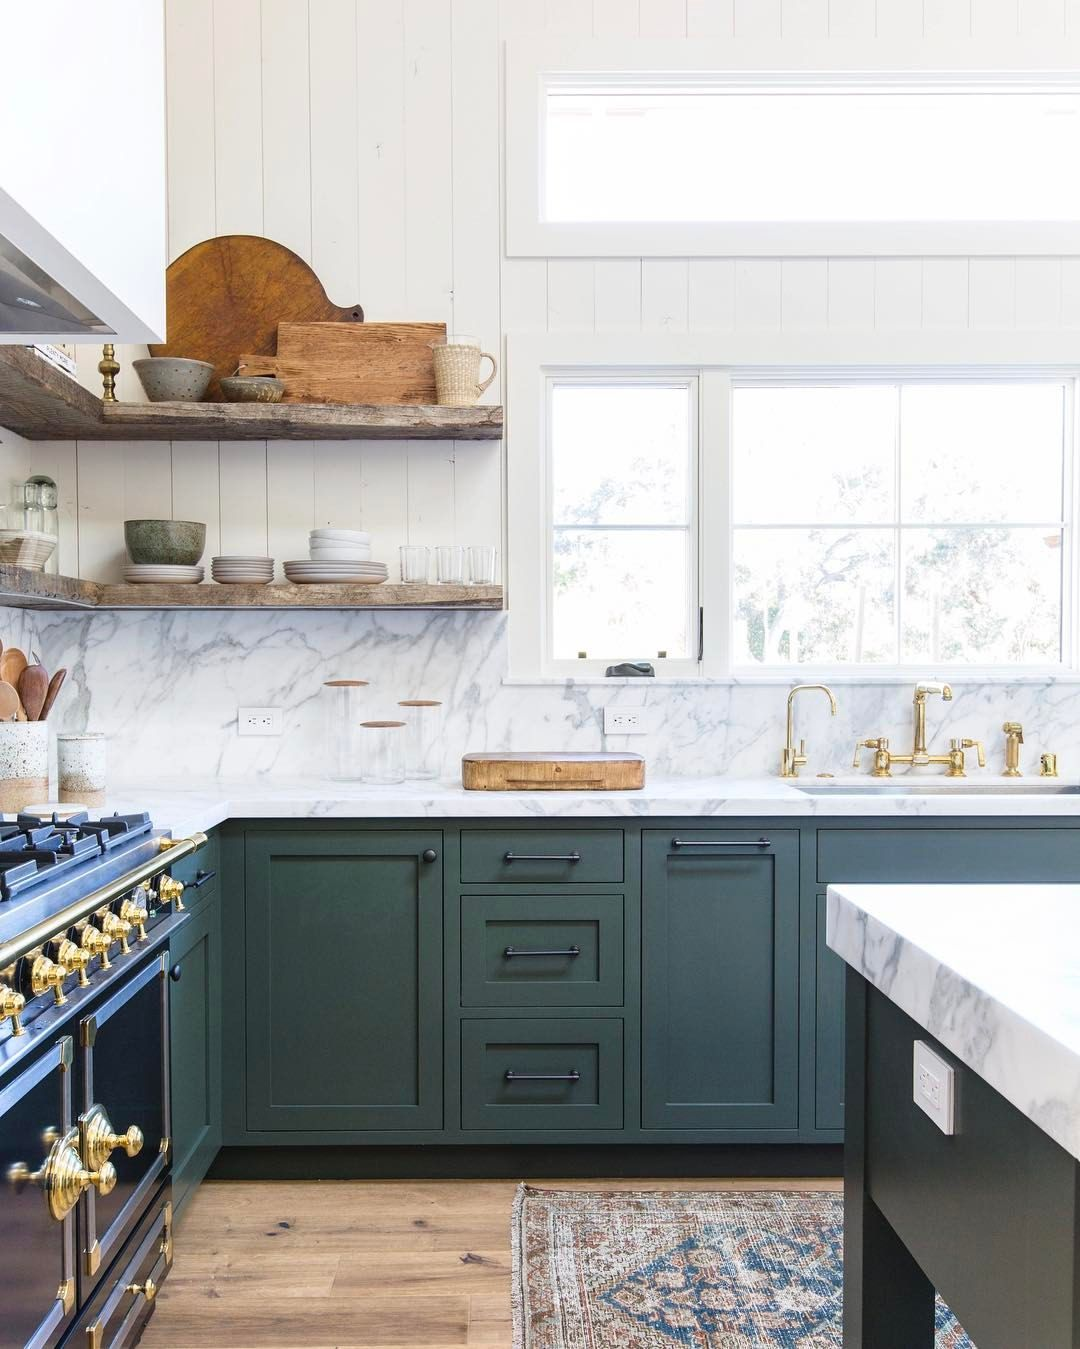 Green Kitchen Backsplash: See This Instagram Post By @amberinteriors